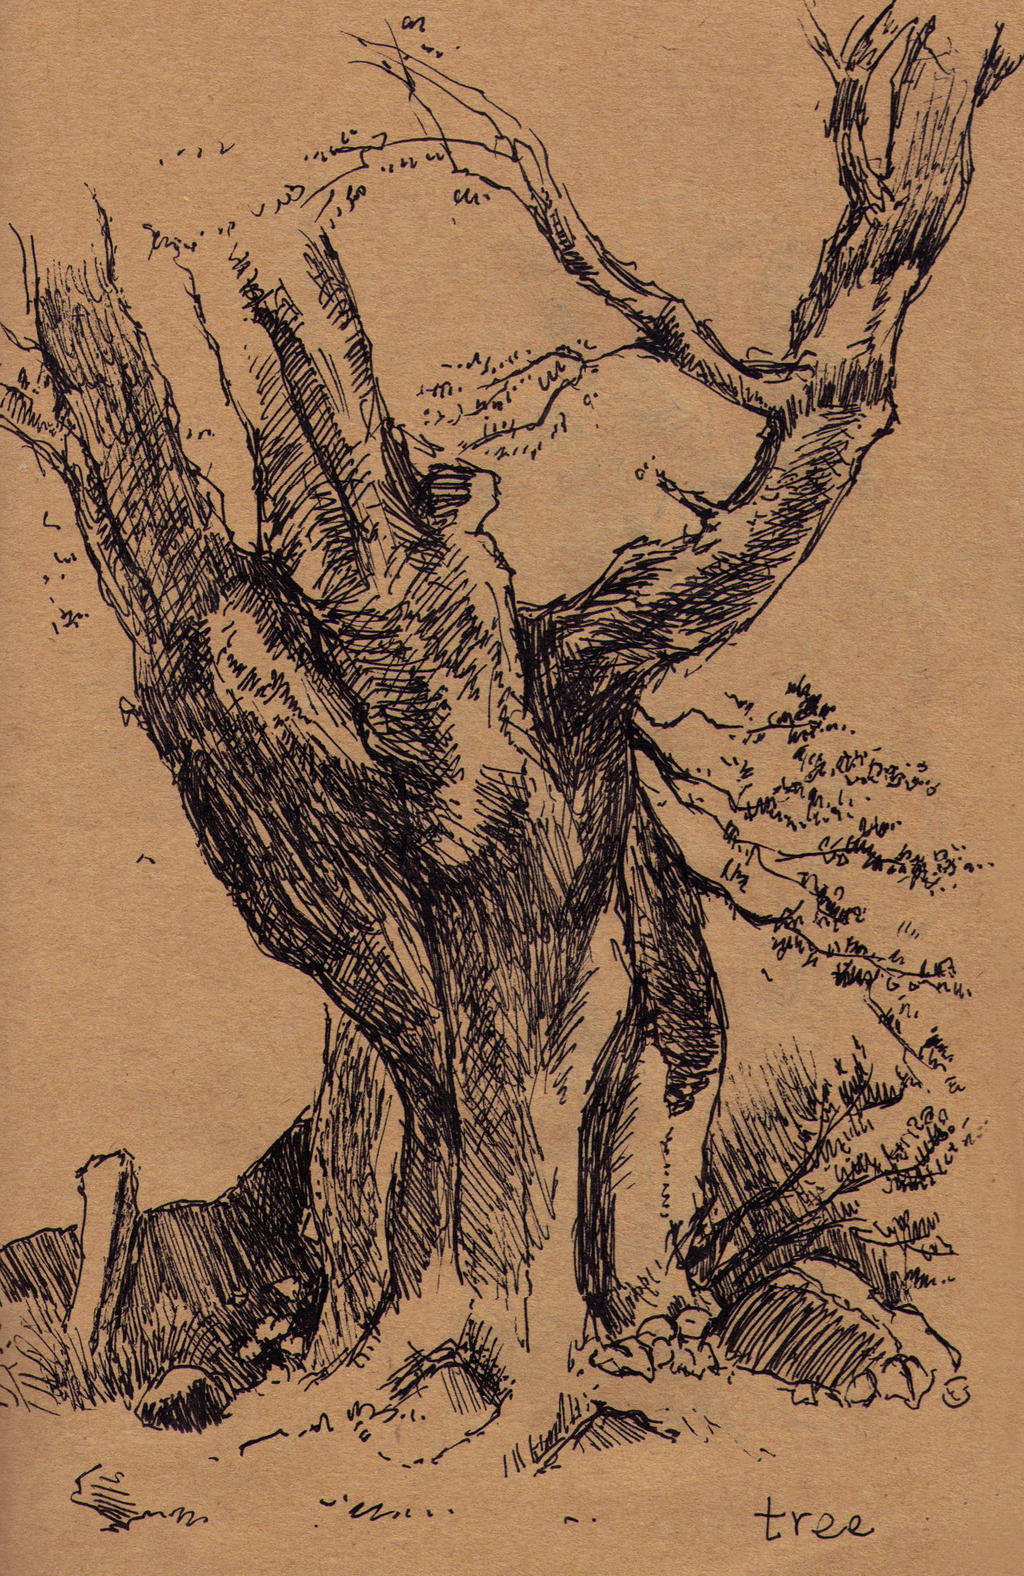 Tree study by Jixed